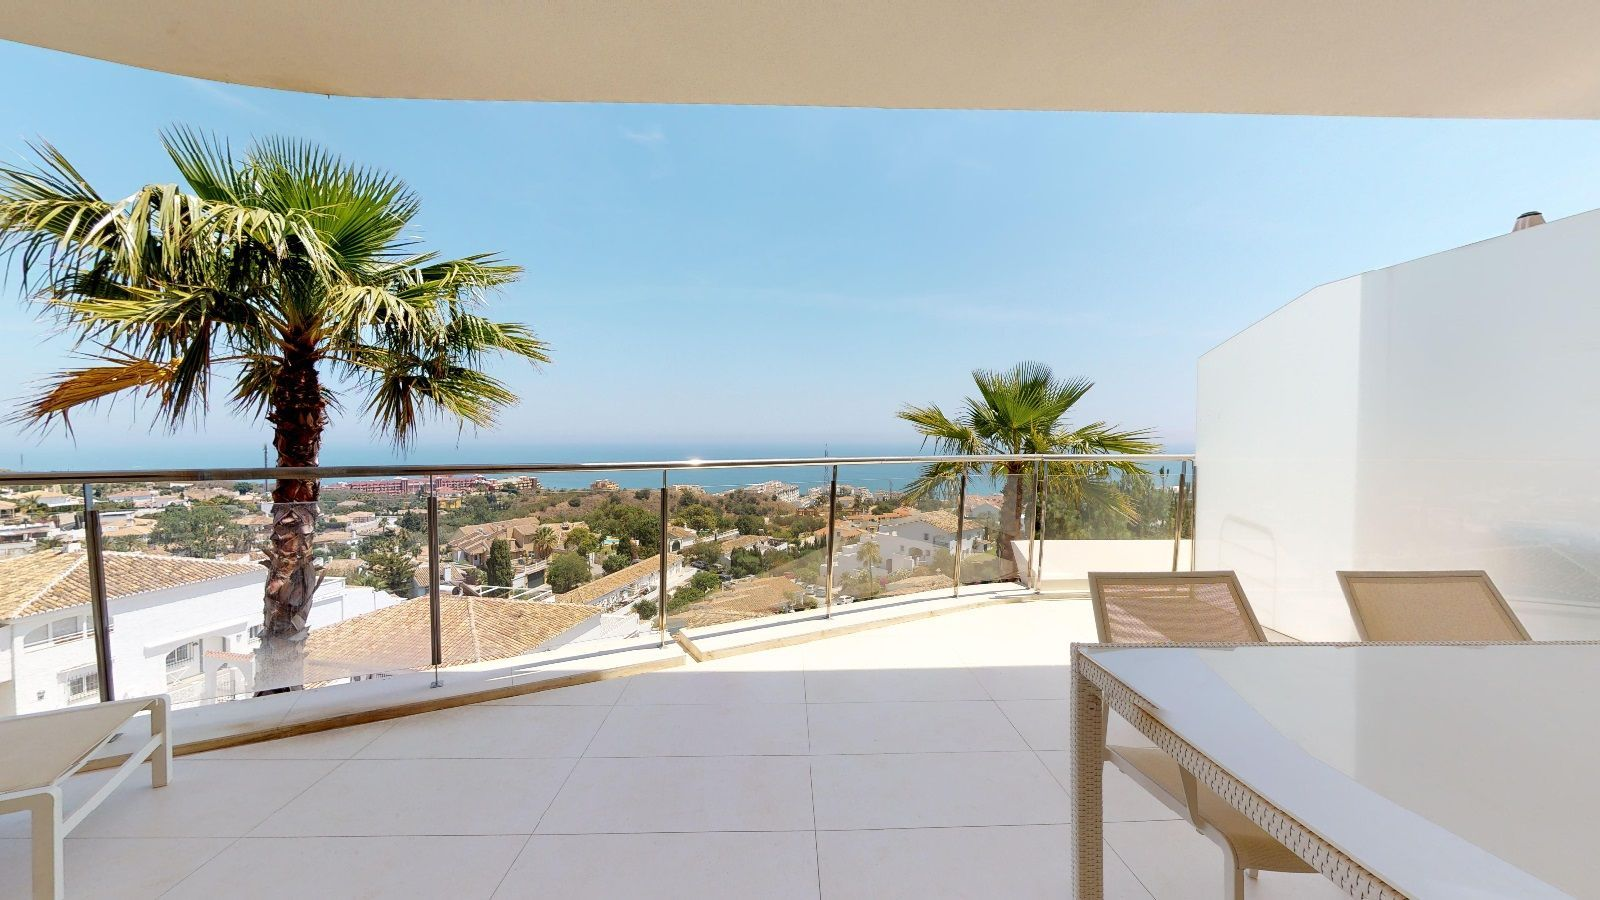 New apartments and penthouses in Fuengirola, Malaga